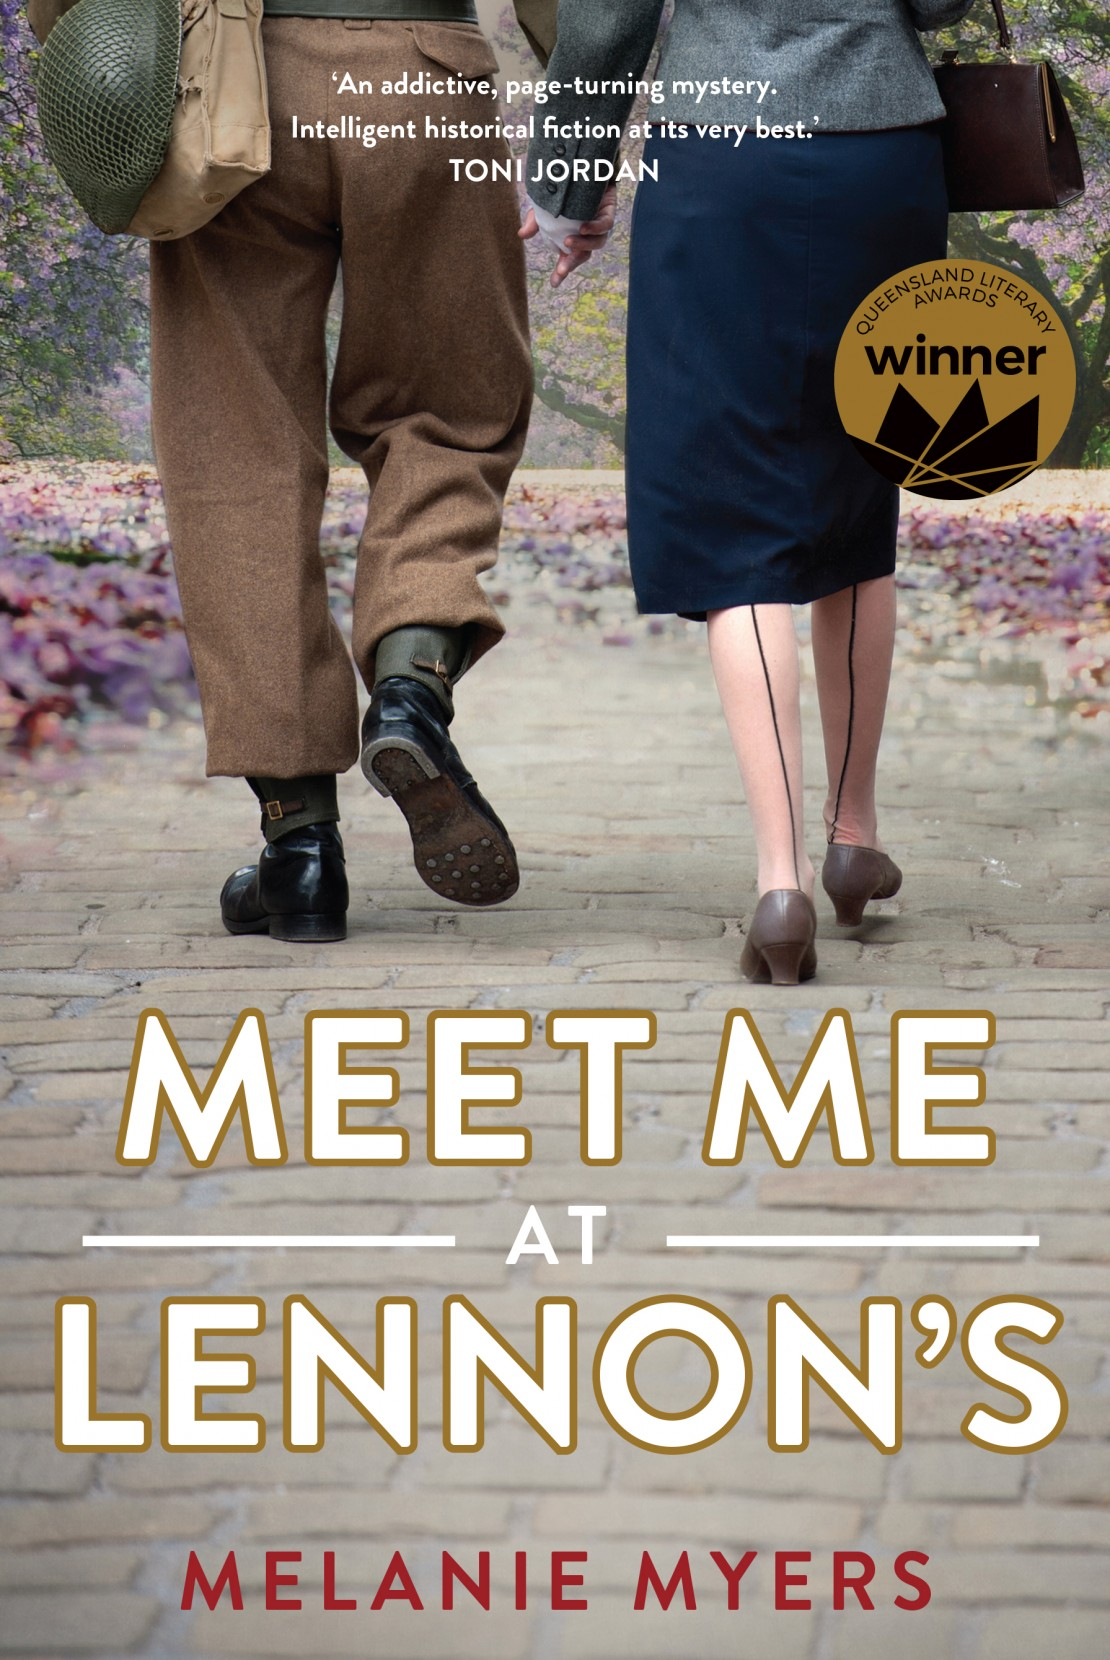 Meet Me at Lennons by Melanie Myers